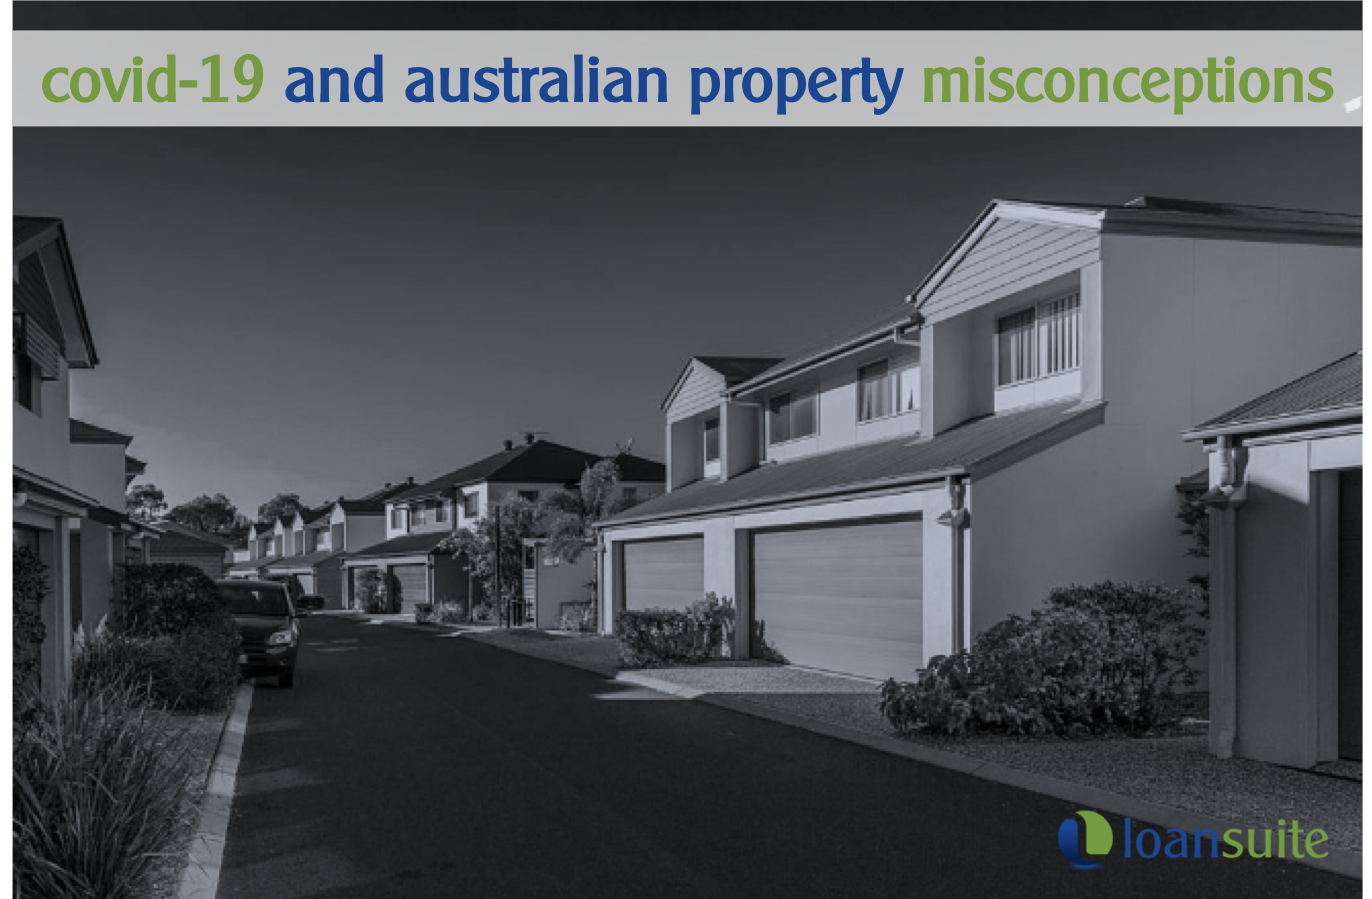 Common Misconceptions for Aussie Property During Covid-19 - Loansuite - Mortgage Brokers